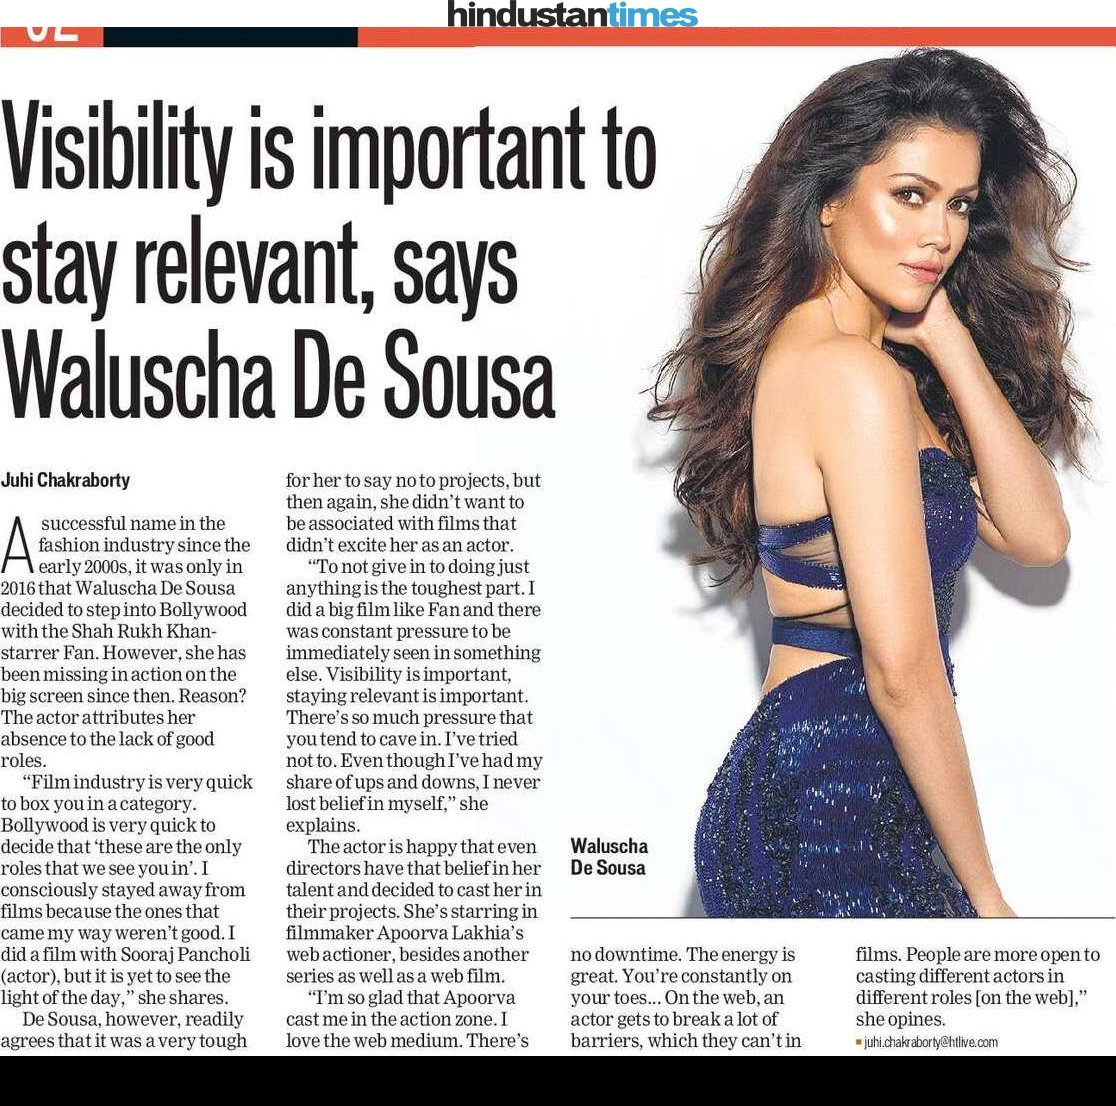 Visibility is important to stay relevant, says @Iamwaluscha